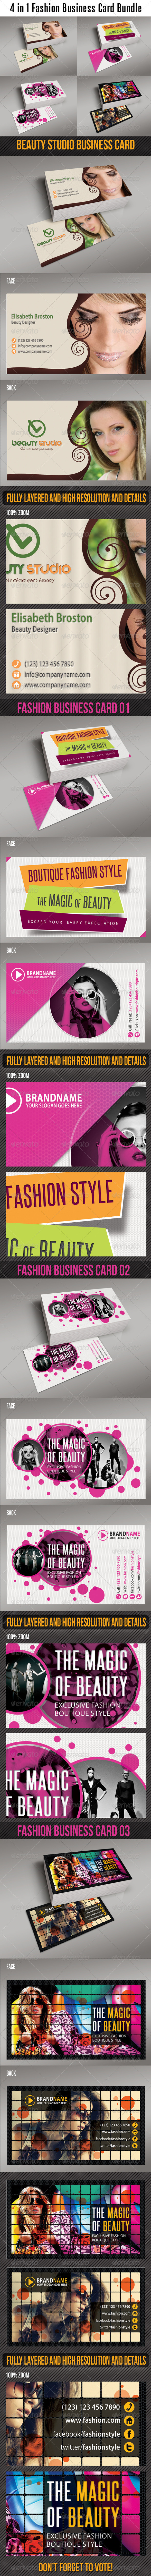 GraphicRiver 4 in 1 Fashion Business Card Bundle 6257751